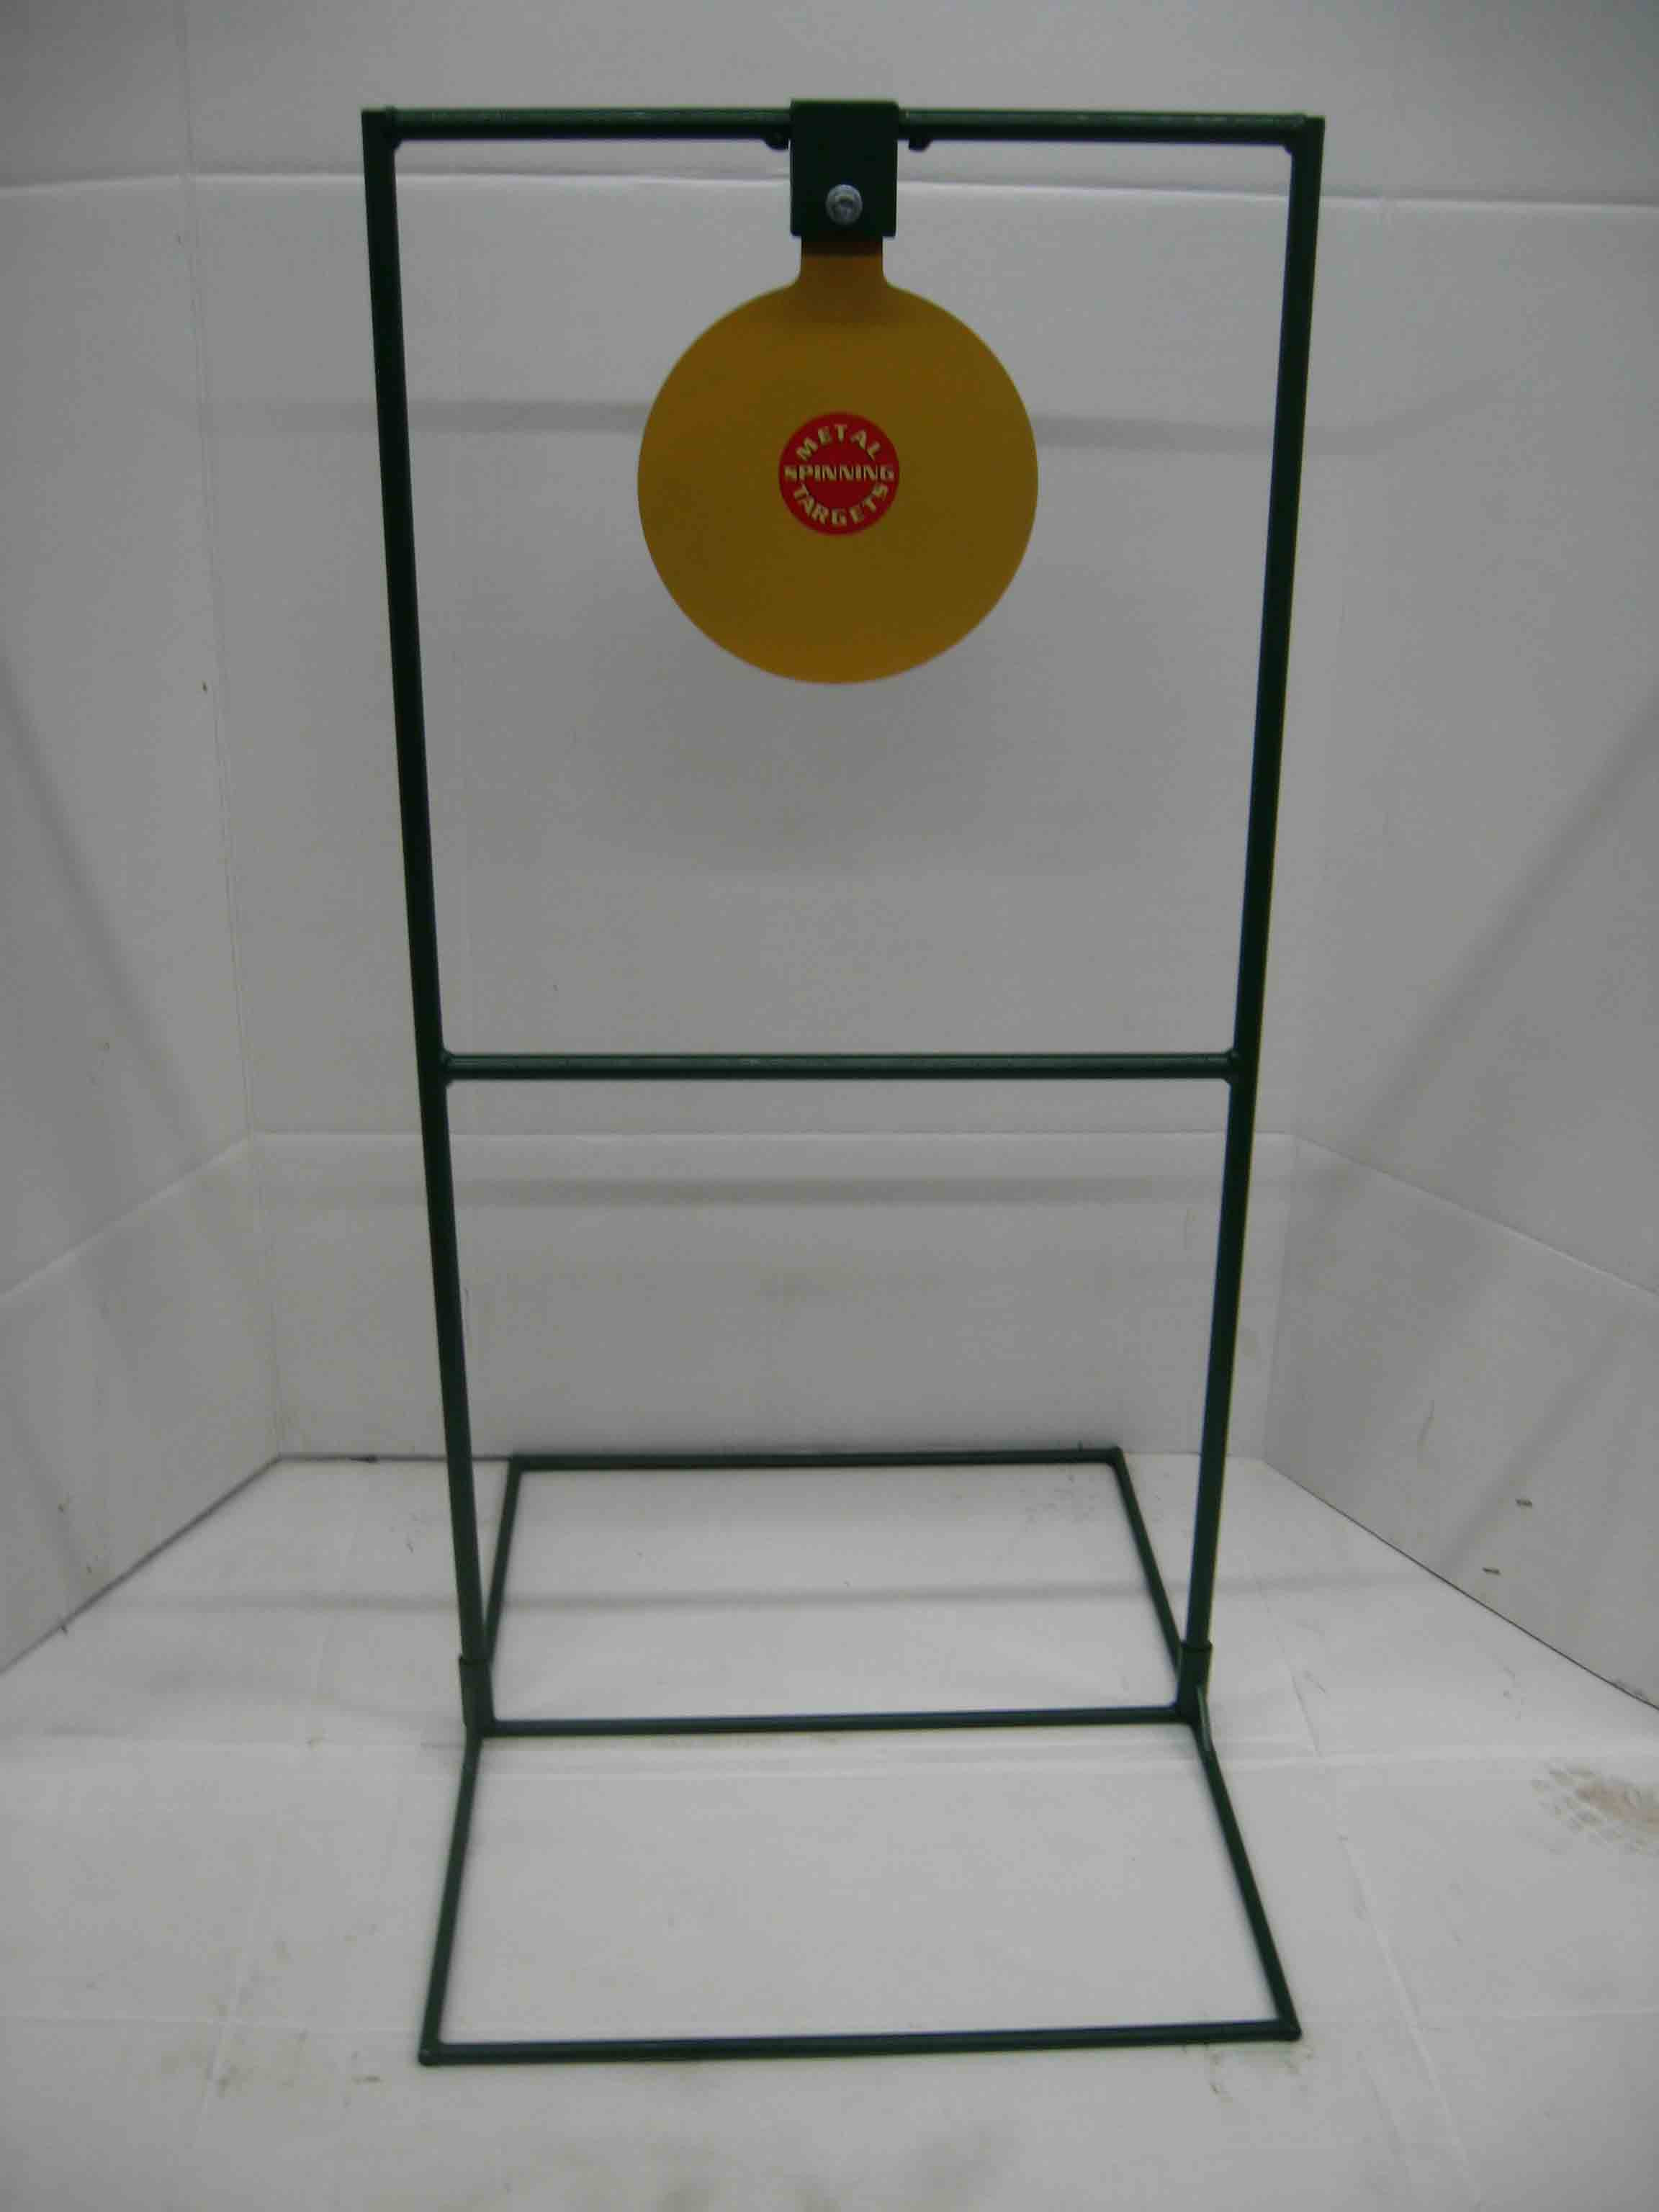 "10"" Circle Gong Tall Boy Target- Rifle*"